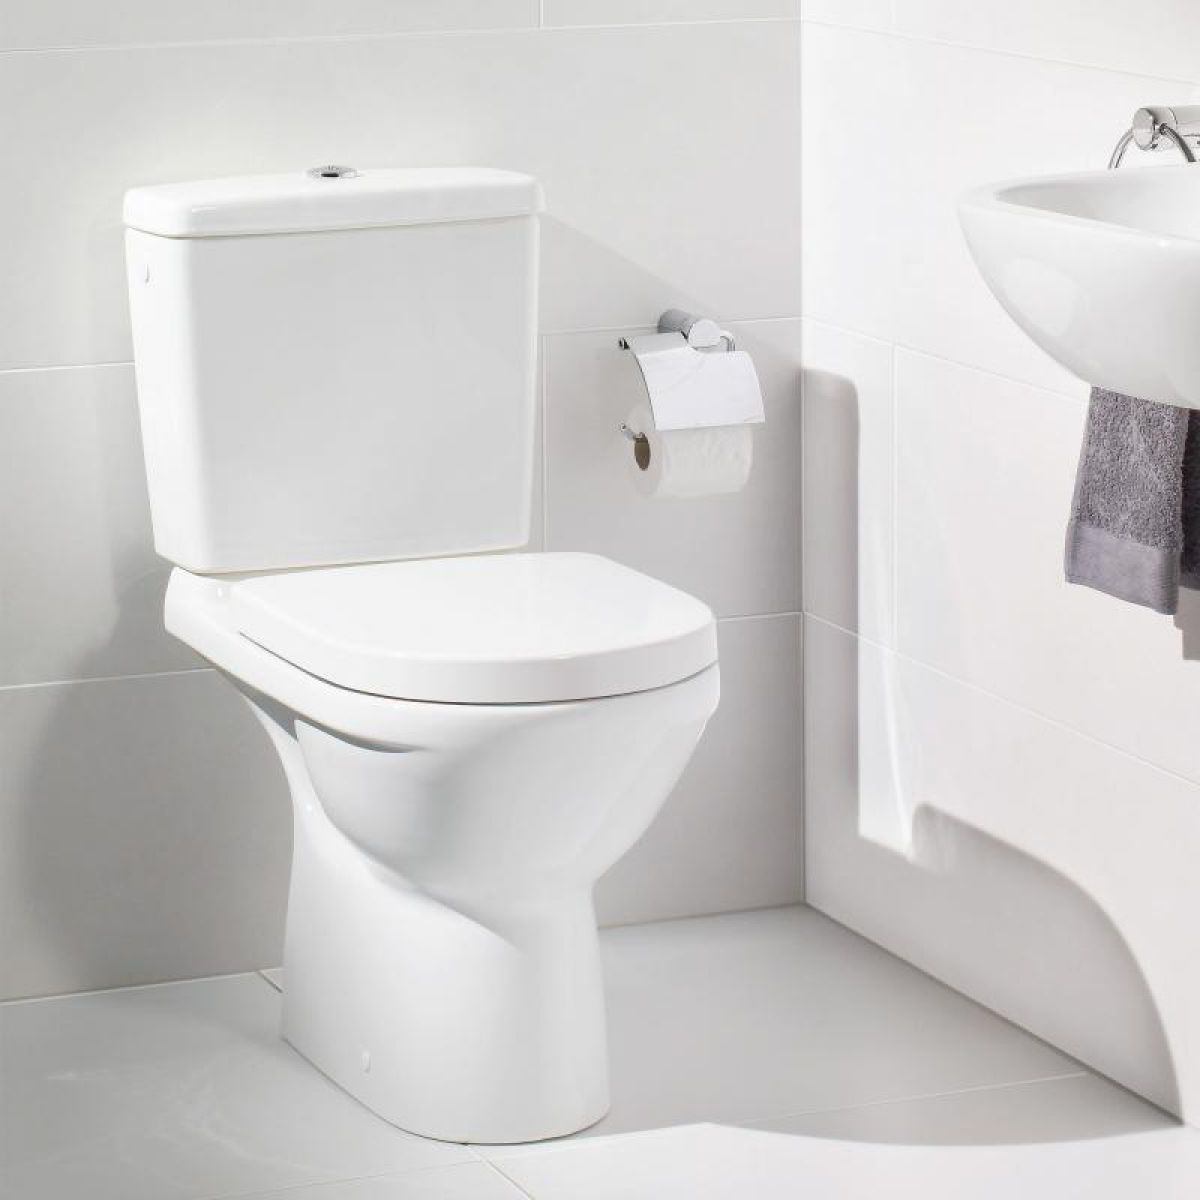 villeroy boch close coupled toilet uk bathrooms. Black Bedroom Furniture Sets. Home Design Ideas